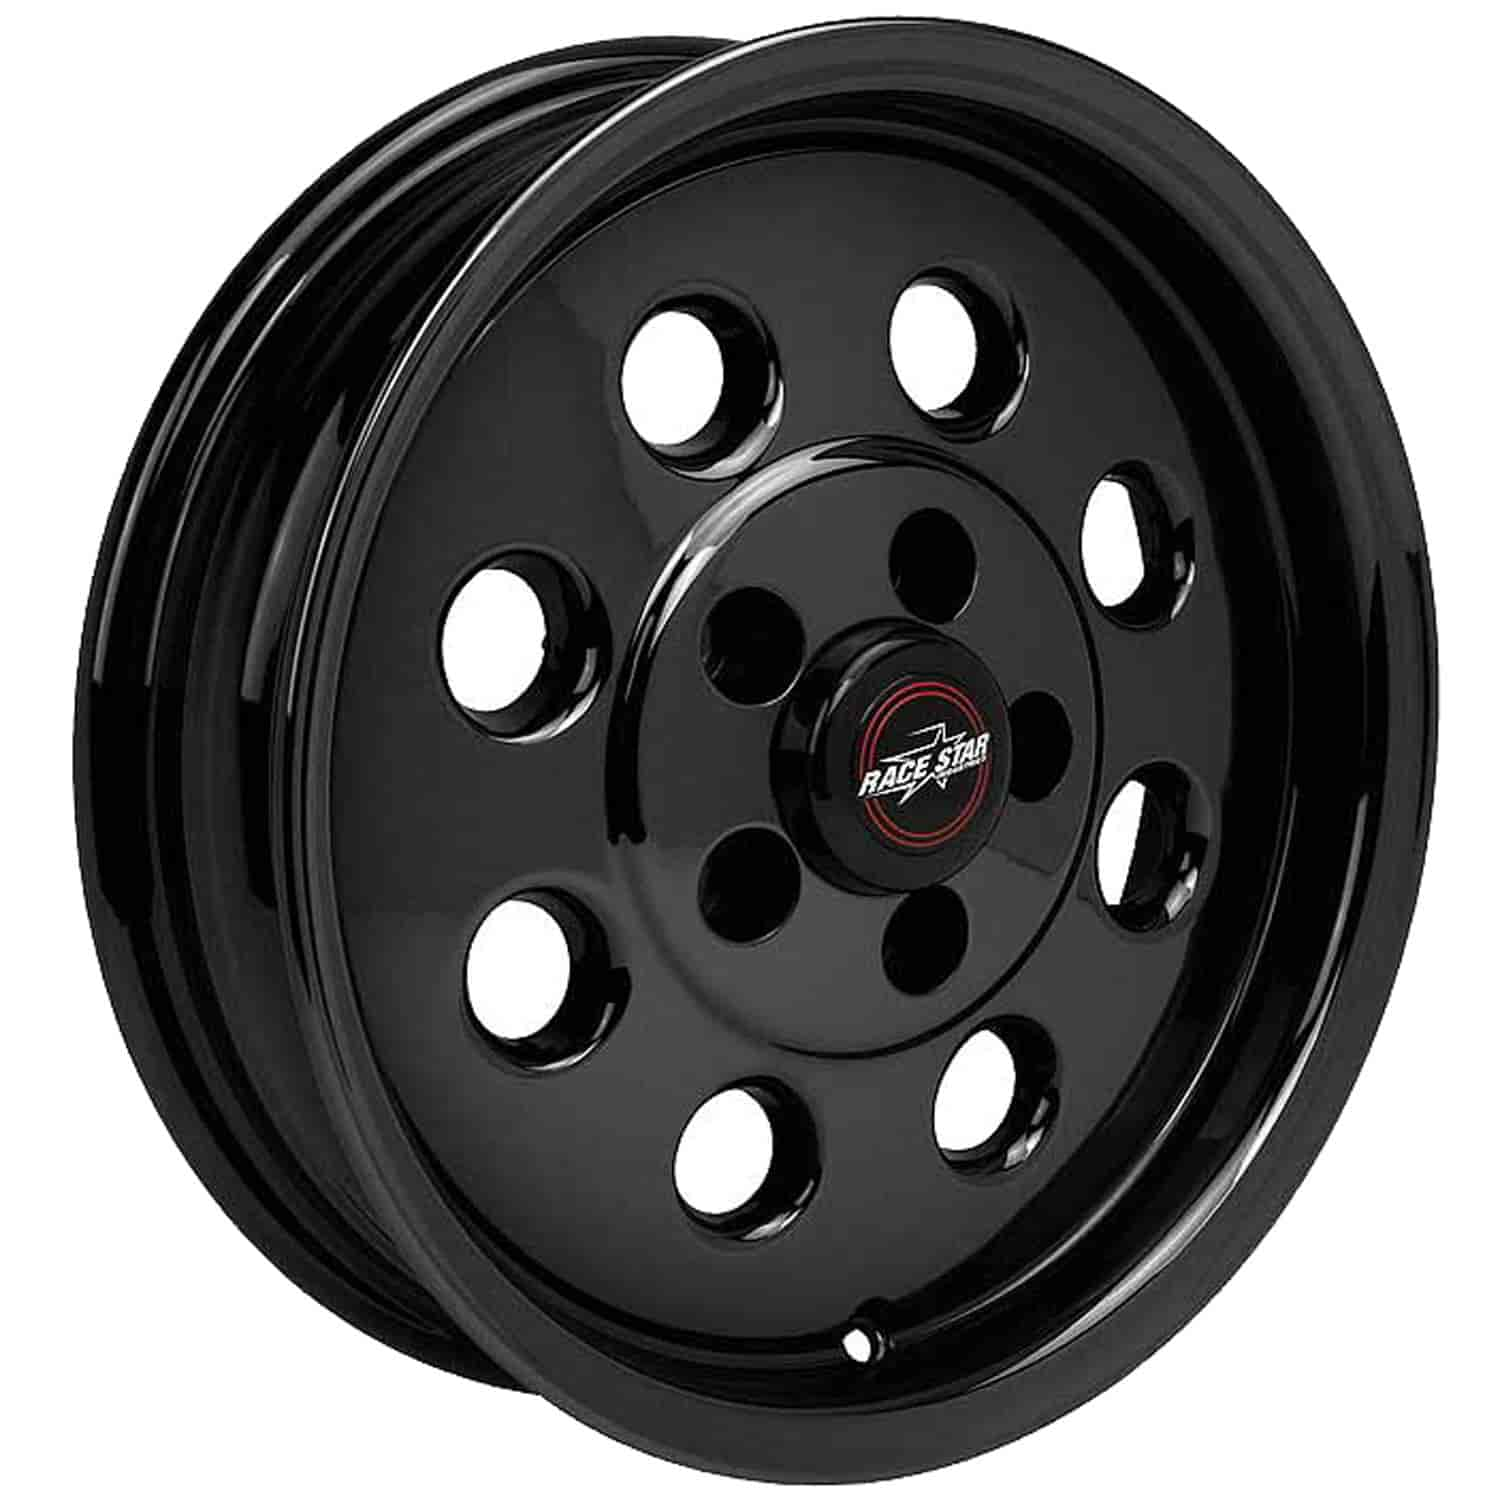 Race Star Wheels 82-745242DS